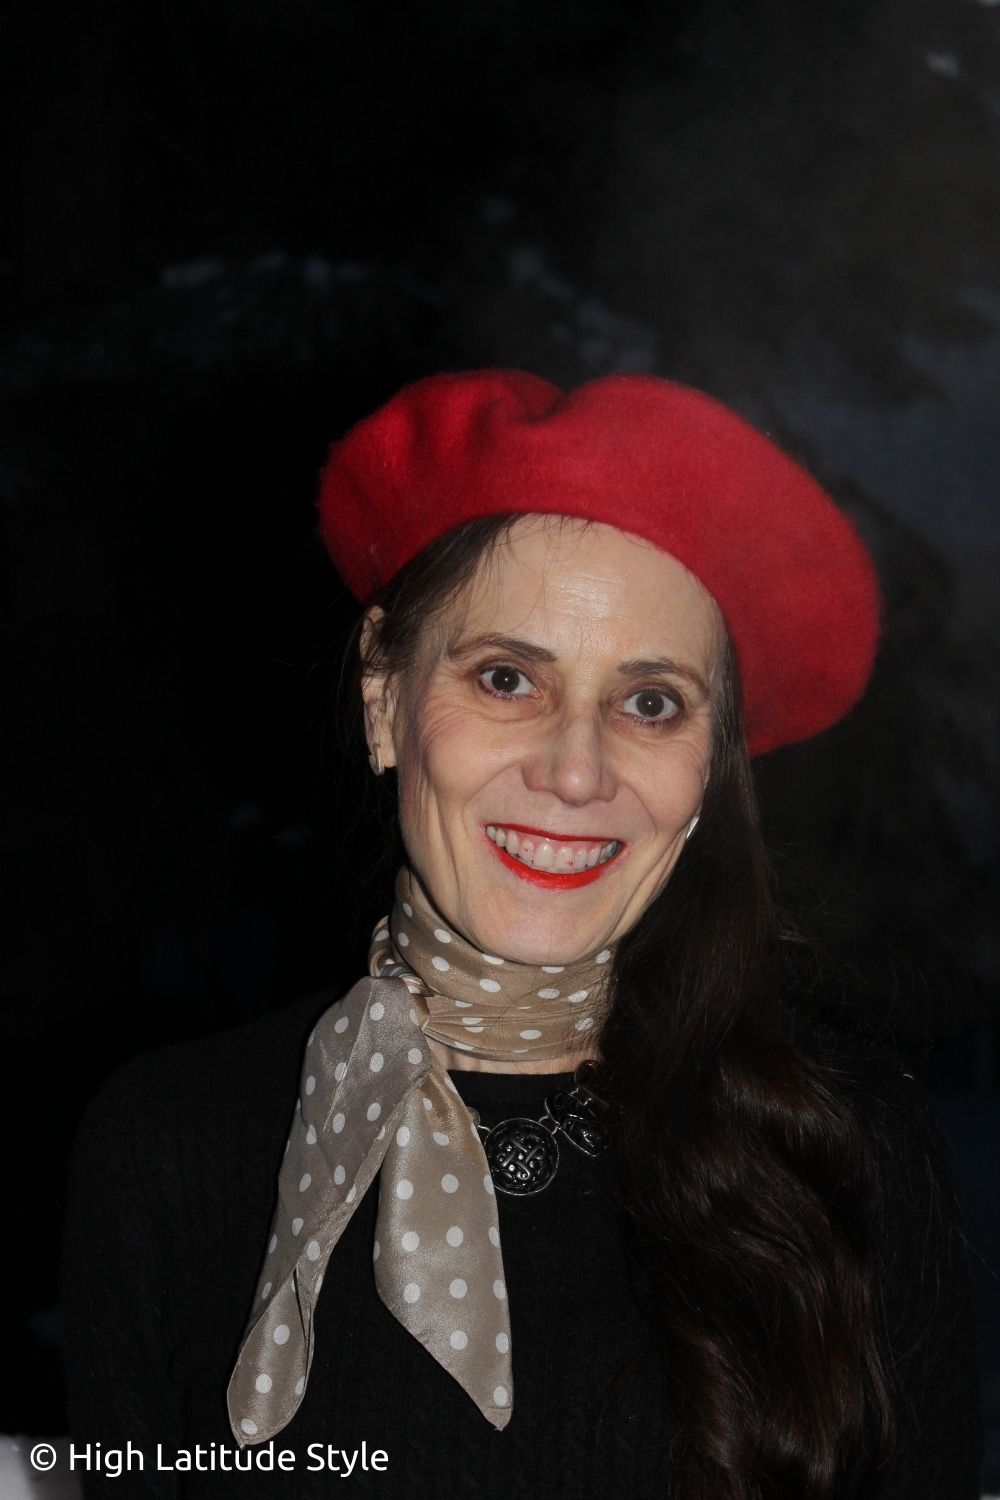 If You Can Only Buy 1 Trend This Season Get a Beret